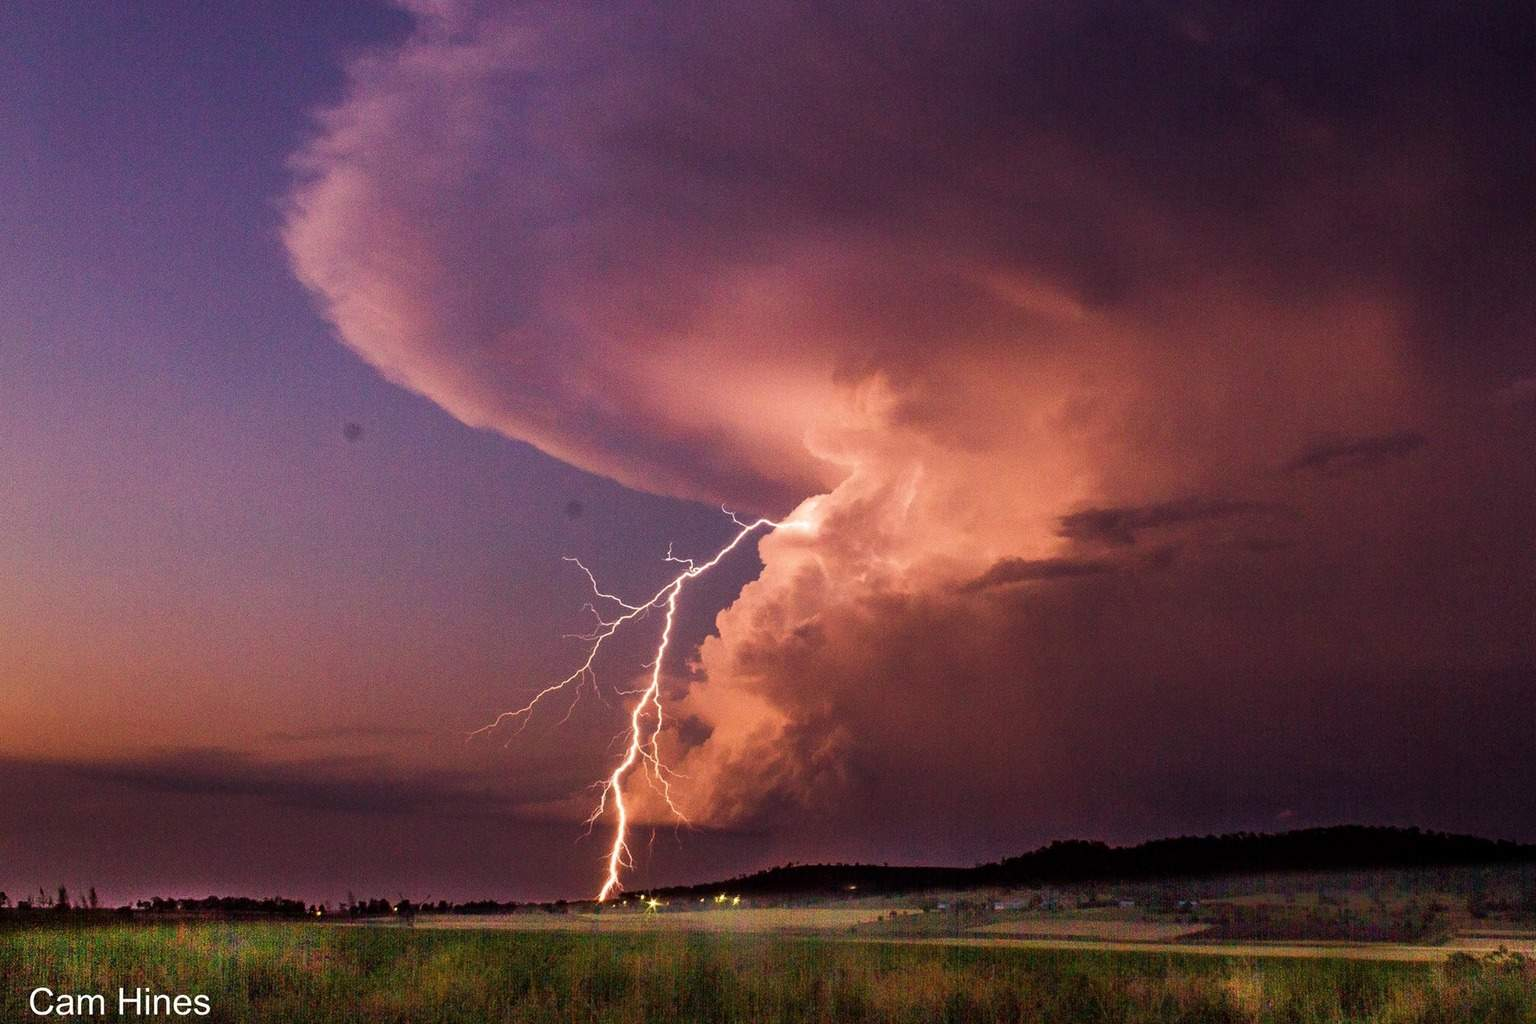 November 21 last year in Westbrook, Australia. It's always a rare treat seeing clear air lightning on sunset!